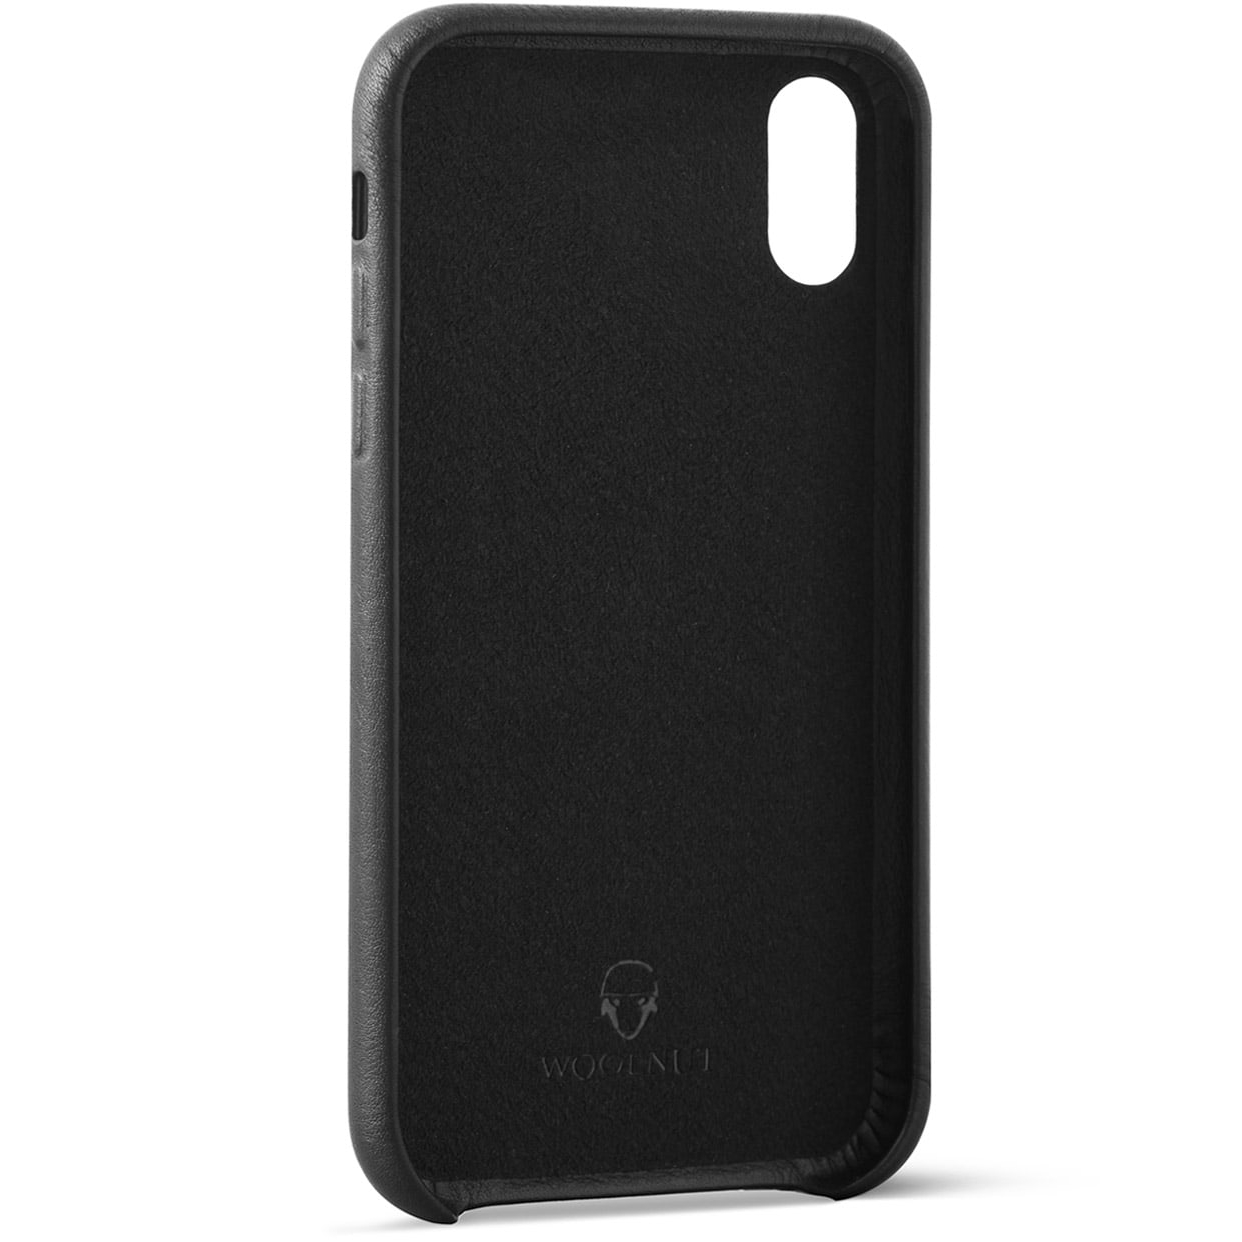 official photos 7ba43 95f39 Woolnut iPhone Xs Max Premium Soft Case Nappa Leather, Black